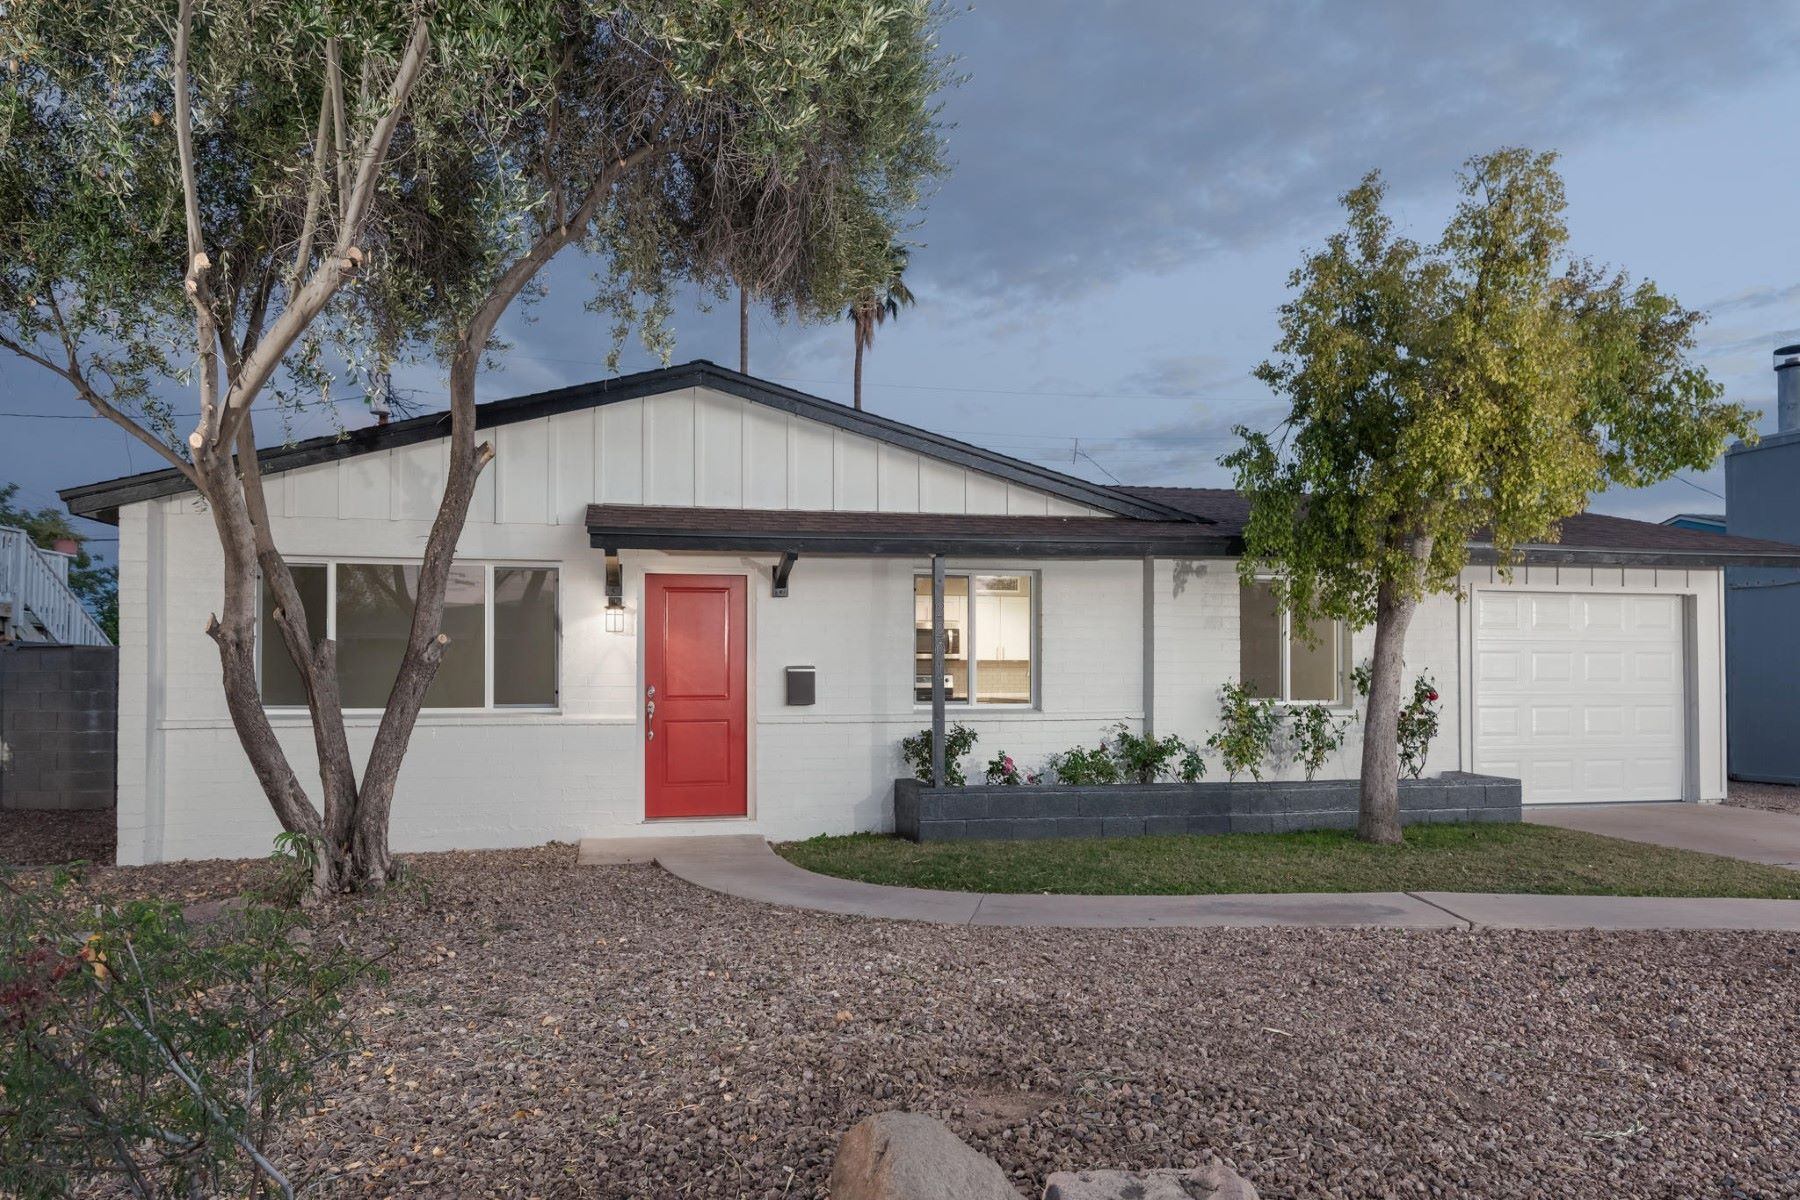 Single Family Homes for Sale at Papago Manor 2201 N Normal Ave Tempe, Arizona 85281 United States